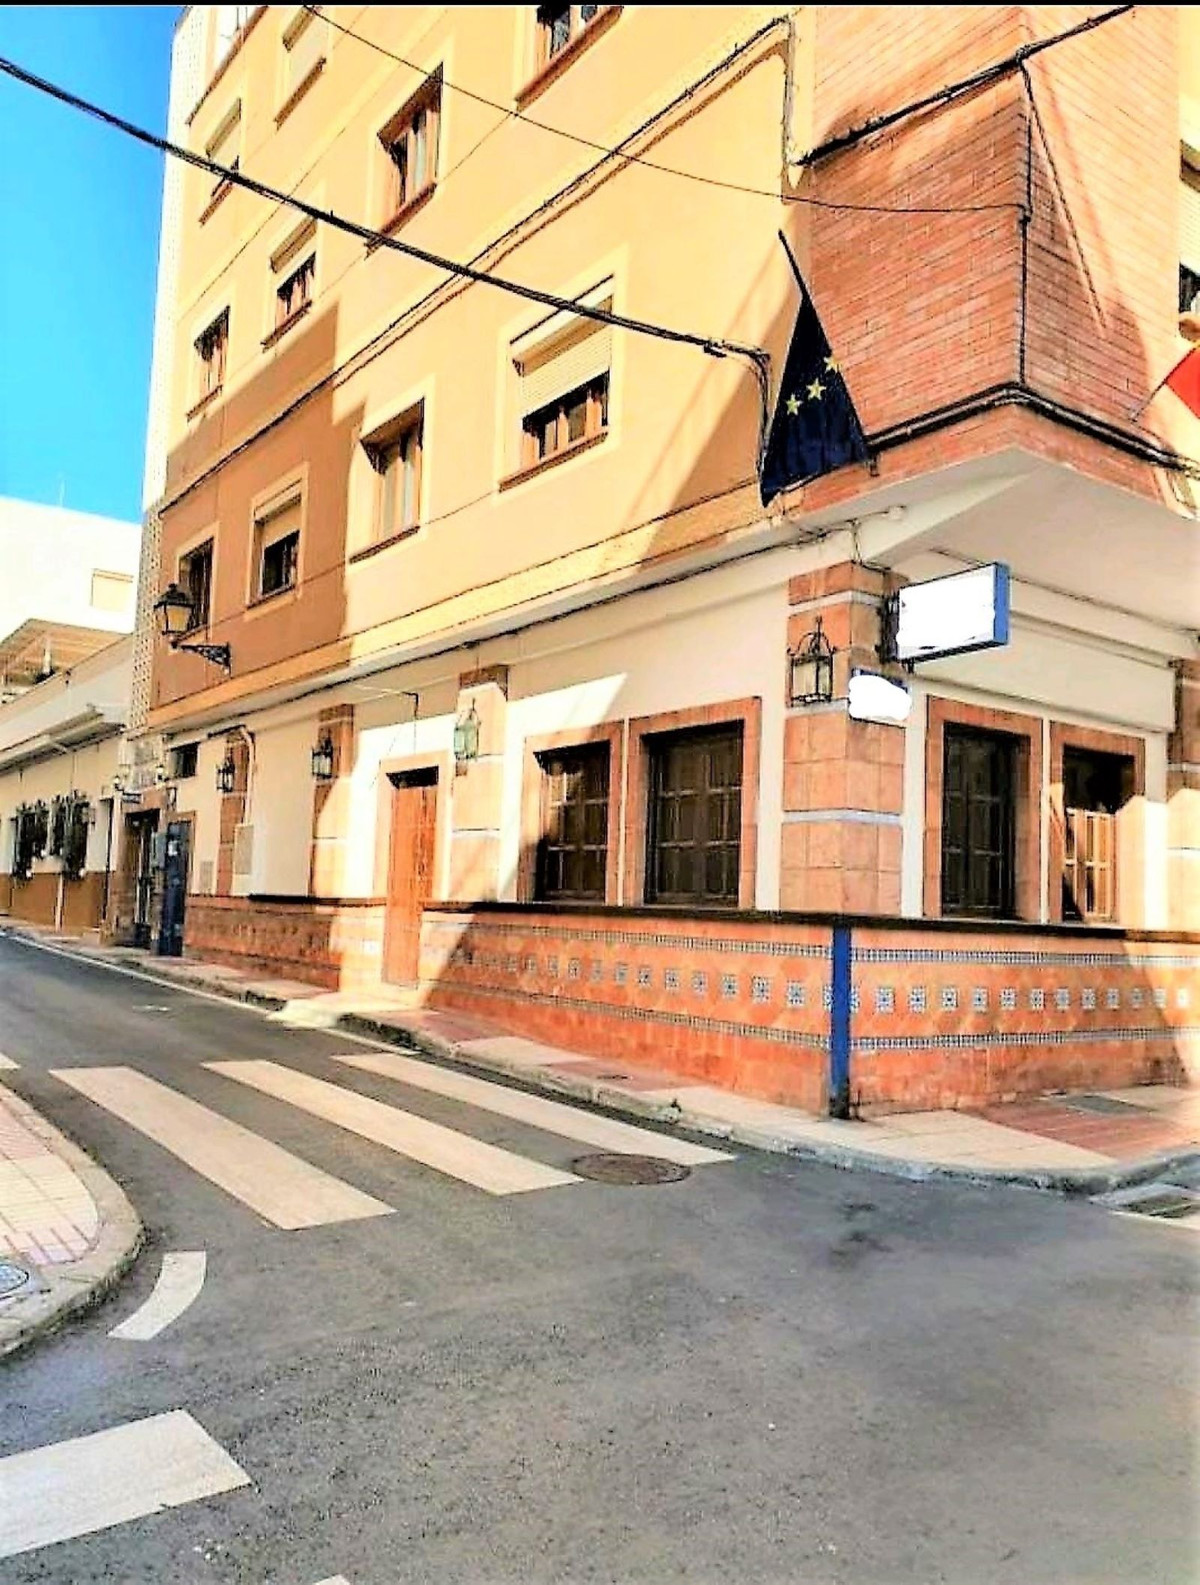 FANTASTIC HOSTAL IN THE HEART OF SAN PEDRO DE ALCANTARA, Great Investment Opportunity! Return assure, Spain